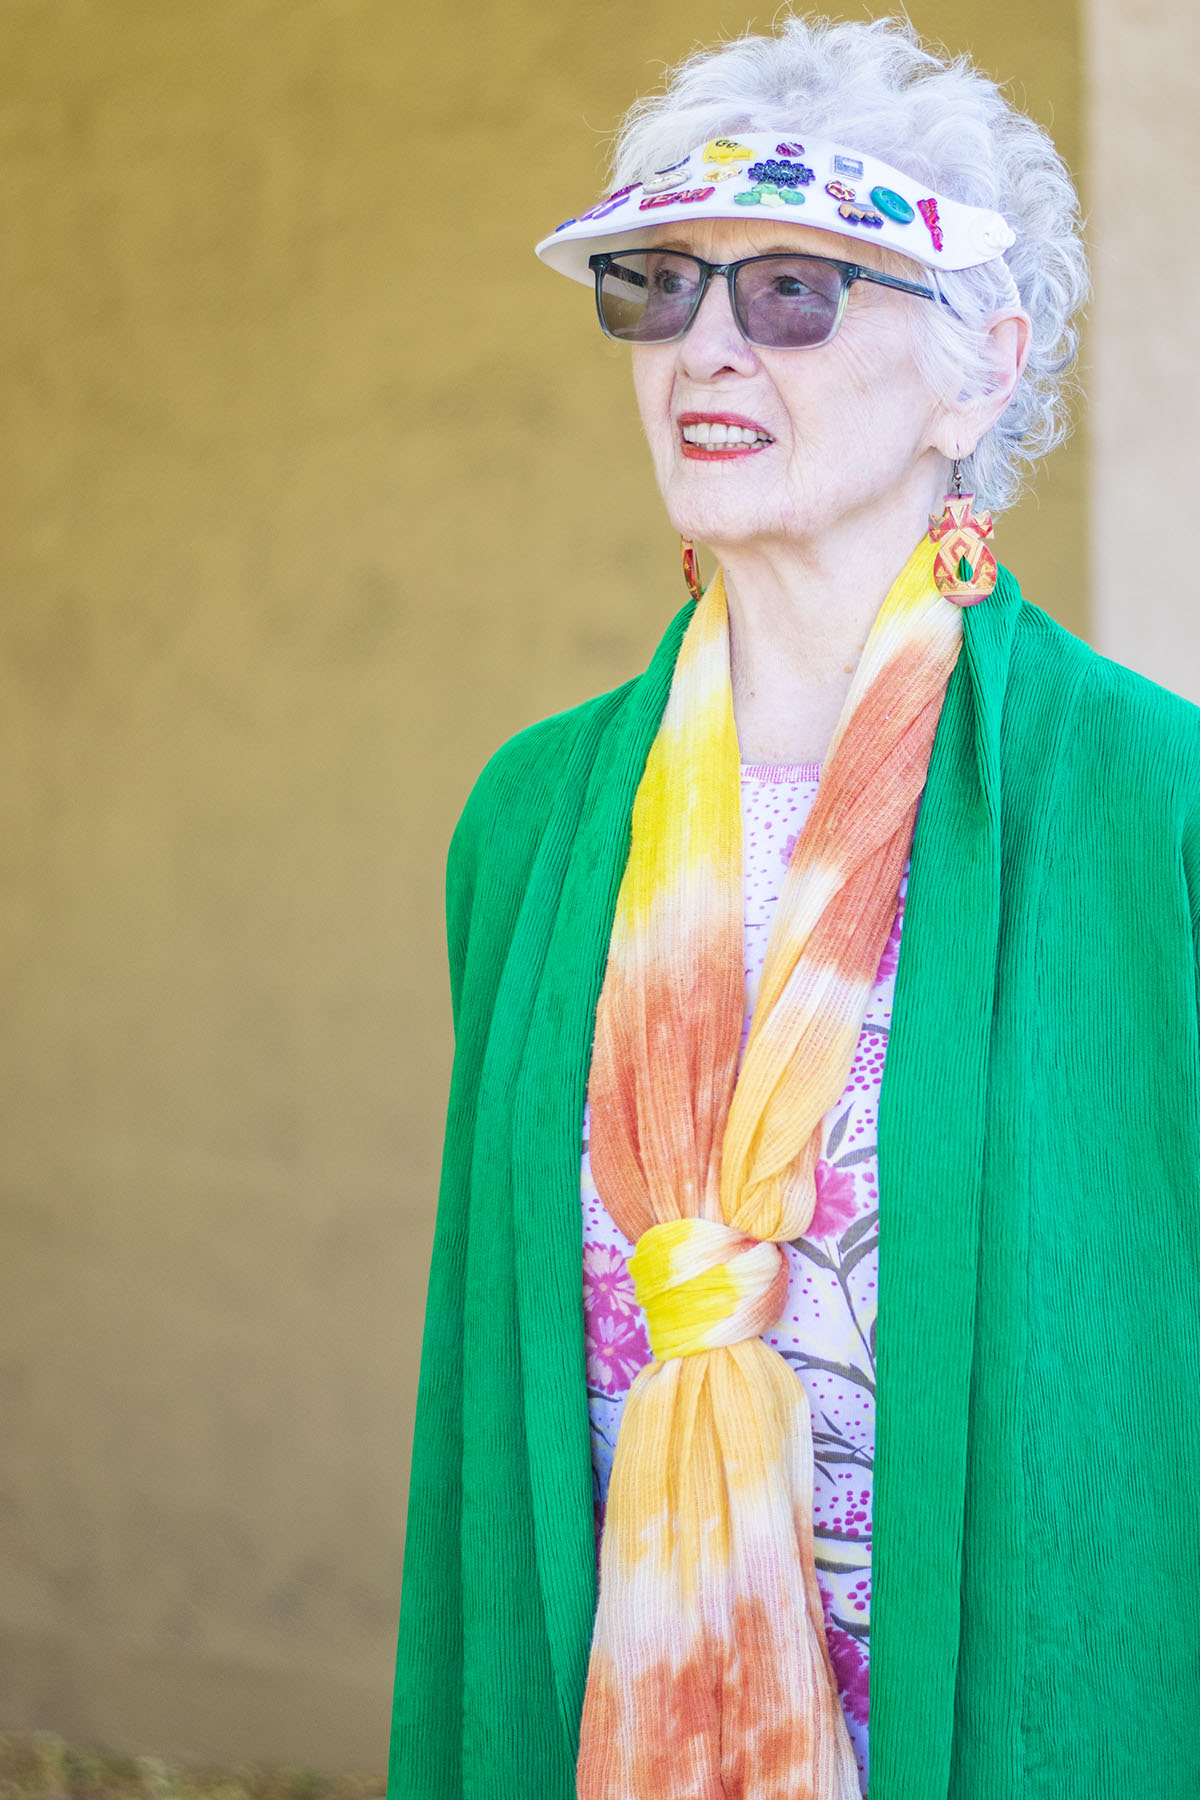 Powerful Color with a Green Kimono Outfit